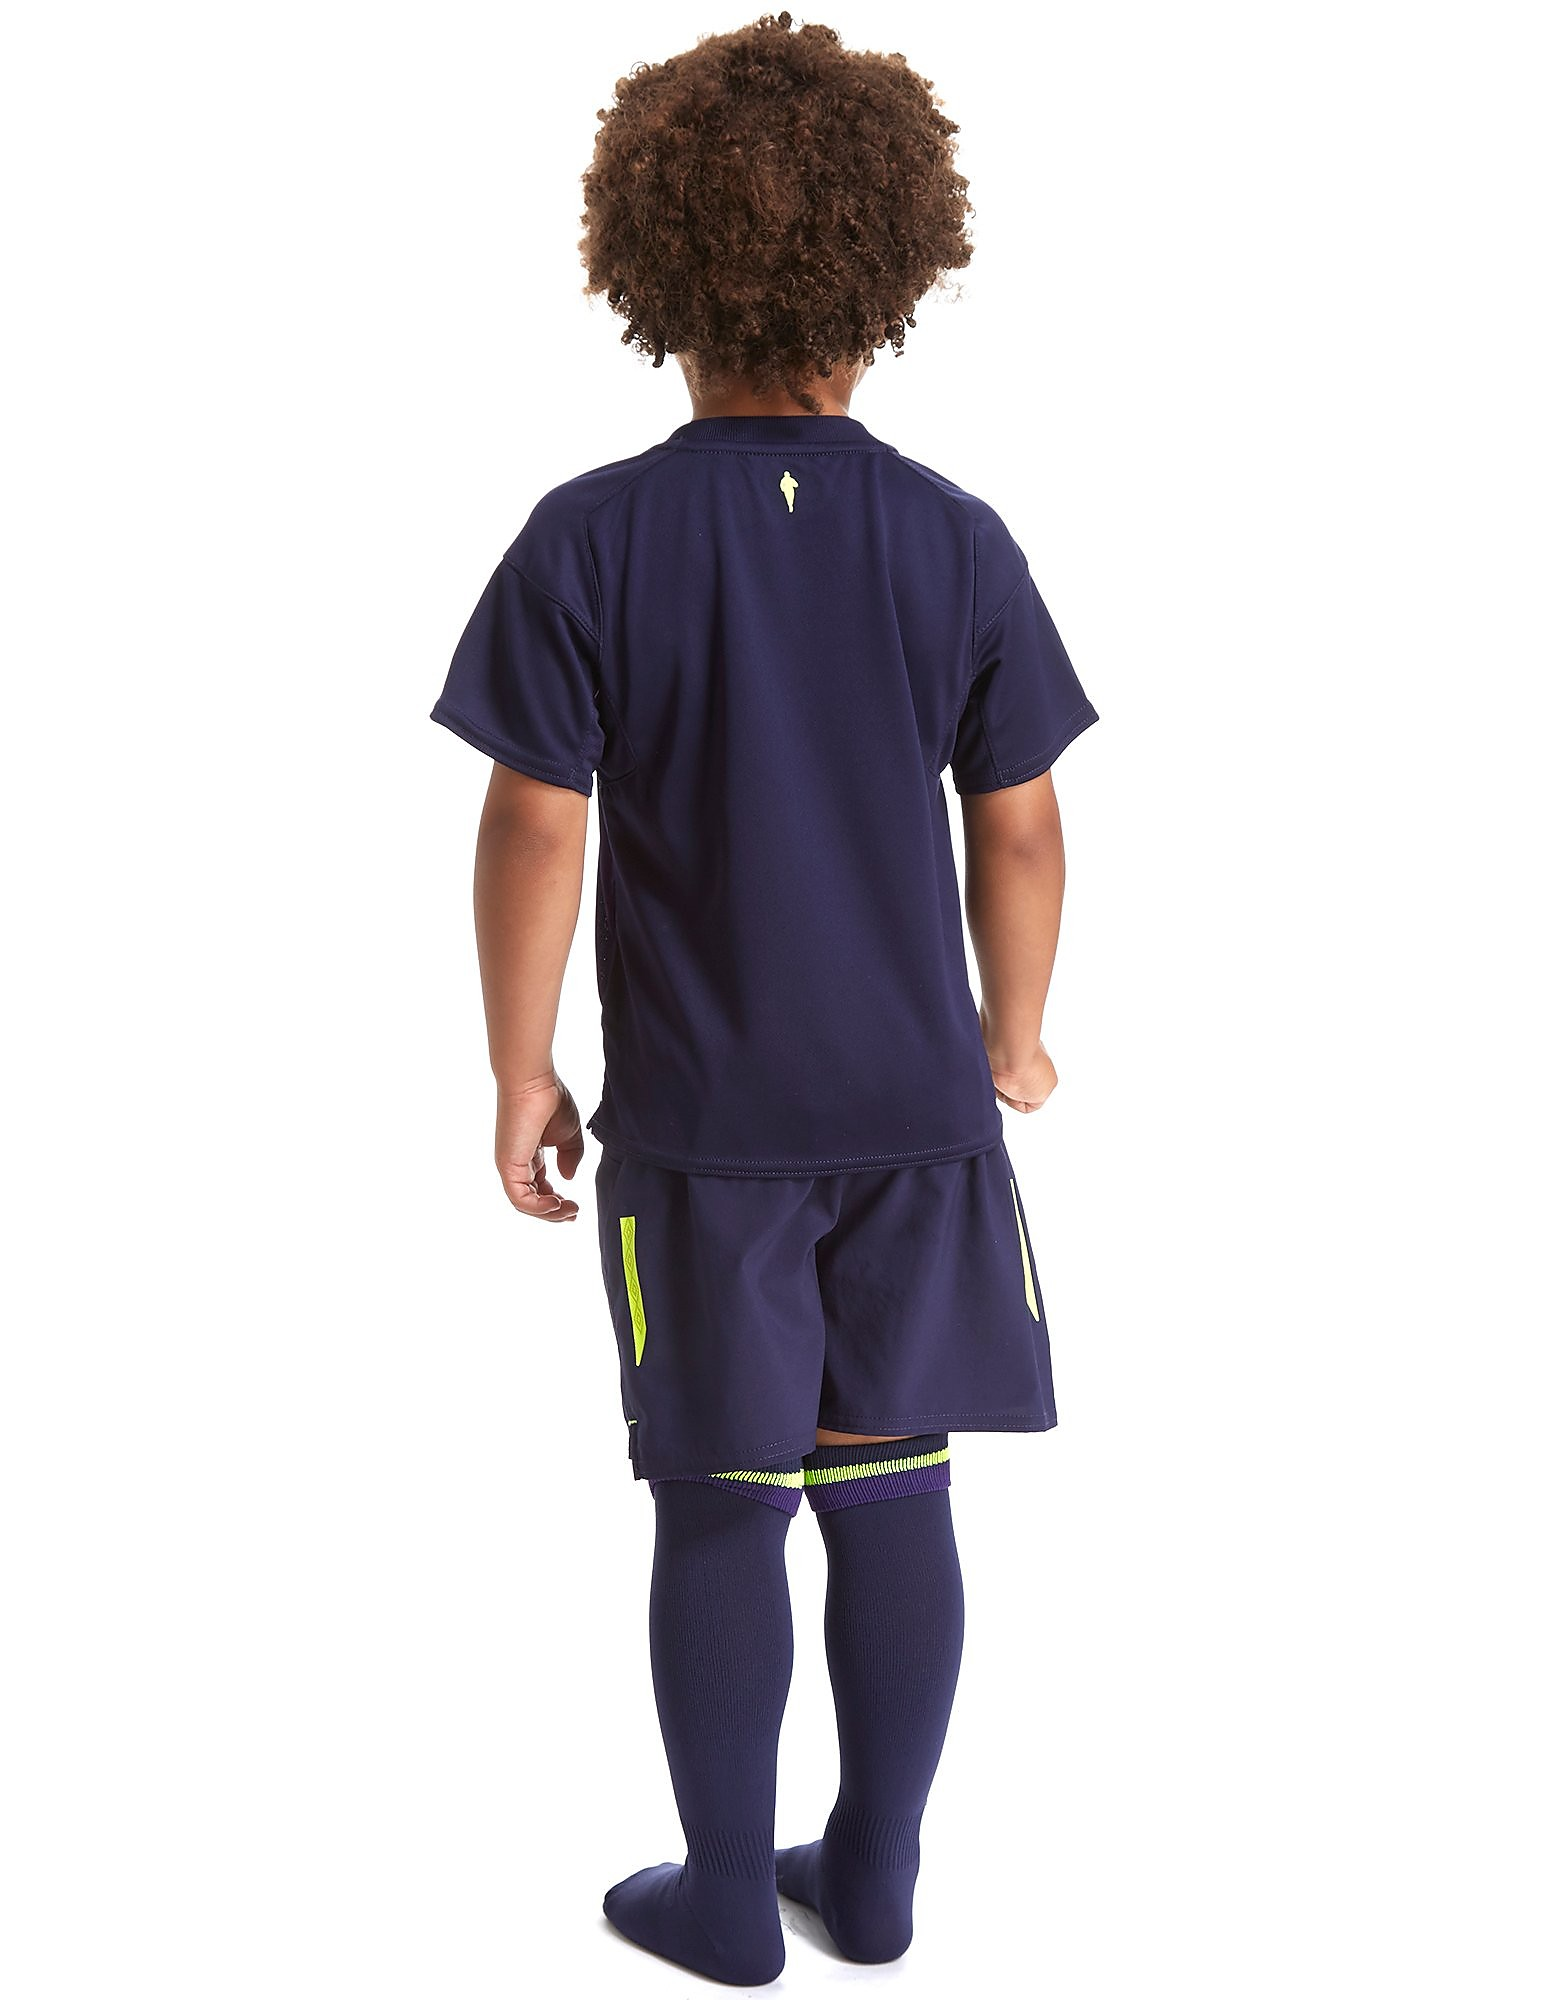 Umbro Everton FC 2017/18 Third Kit Children